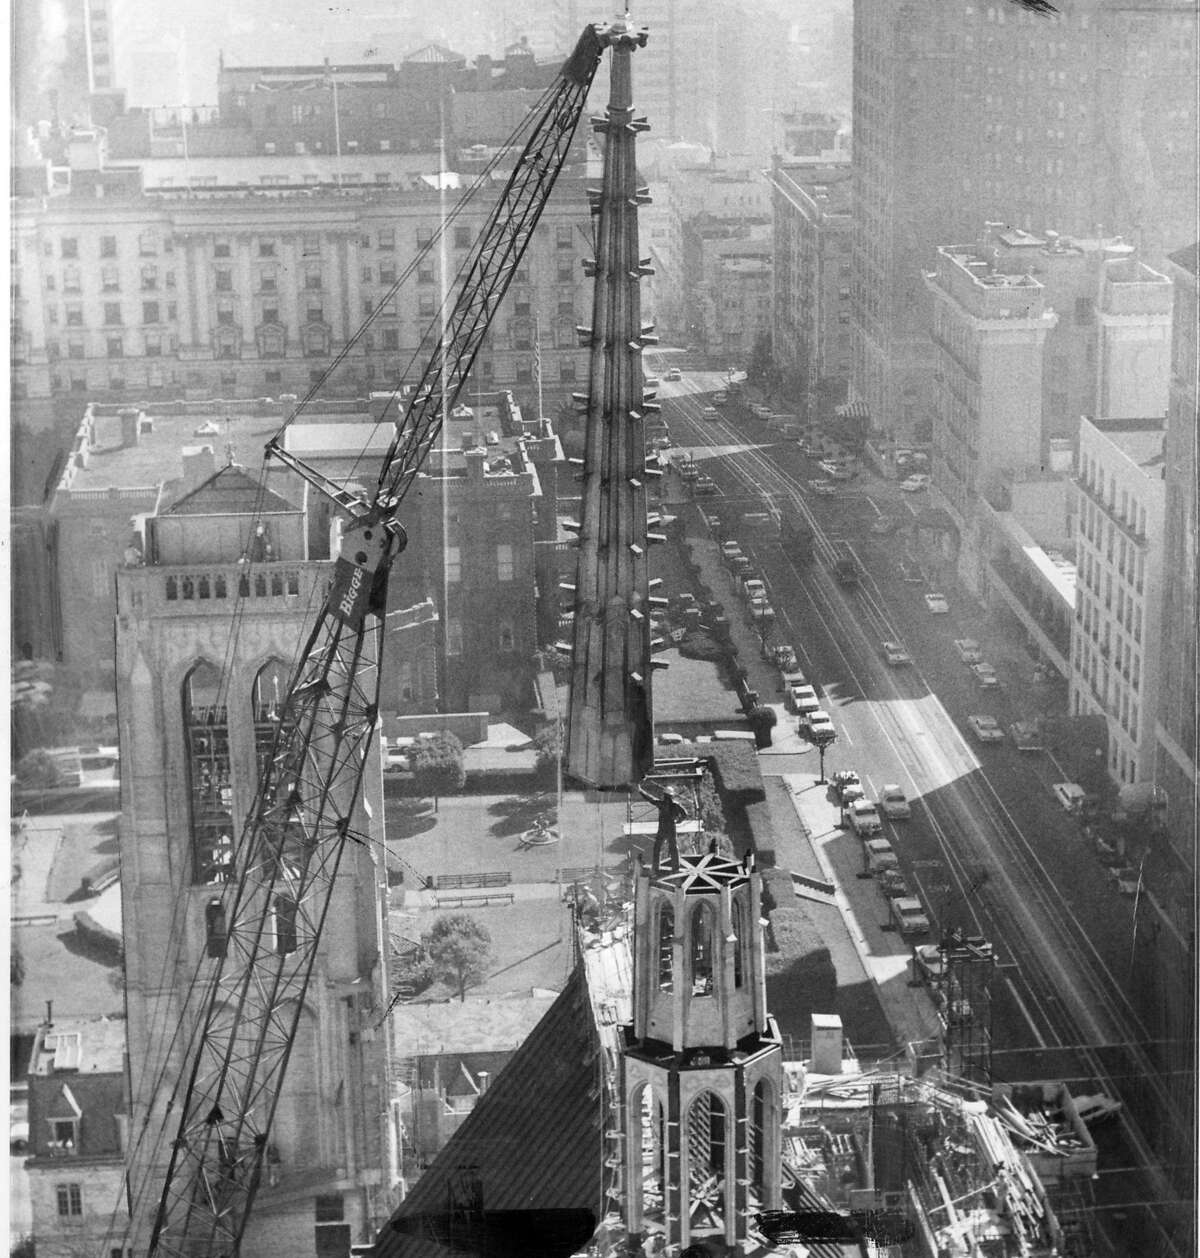 The new spire is being lifted onto Grace Cathedral, March 19, 1963 The spire weighs apron. 5 tons, and is surmounted by a gold cross that measures 17 ft. 5 inches in height Photo ran 3/20/1963, p. 1 Associated Press photo